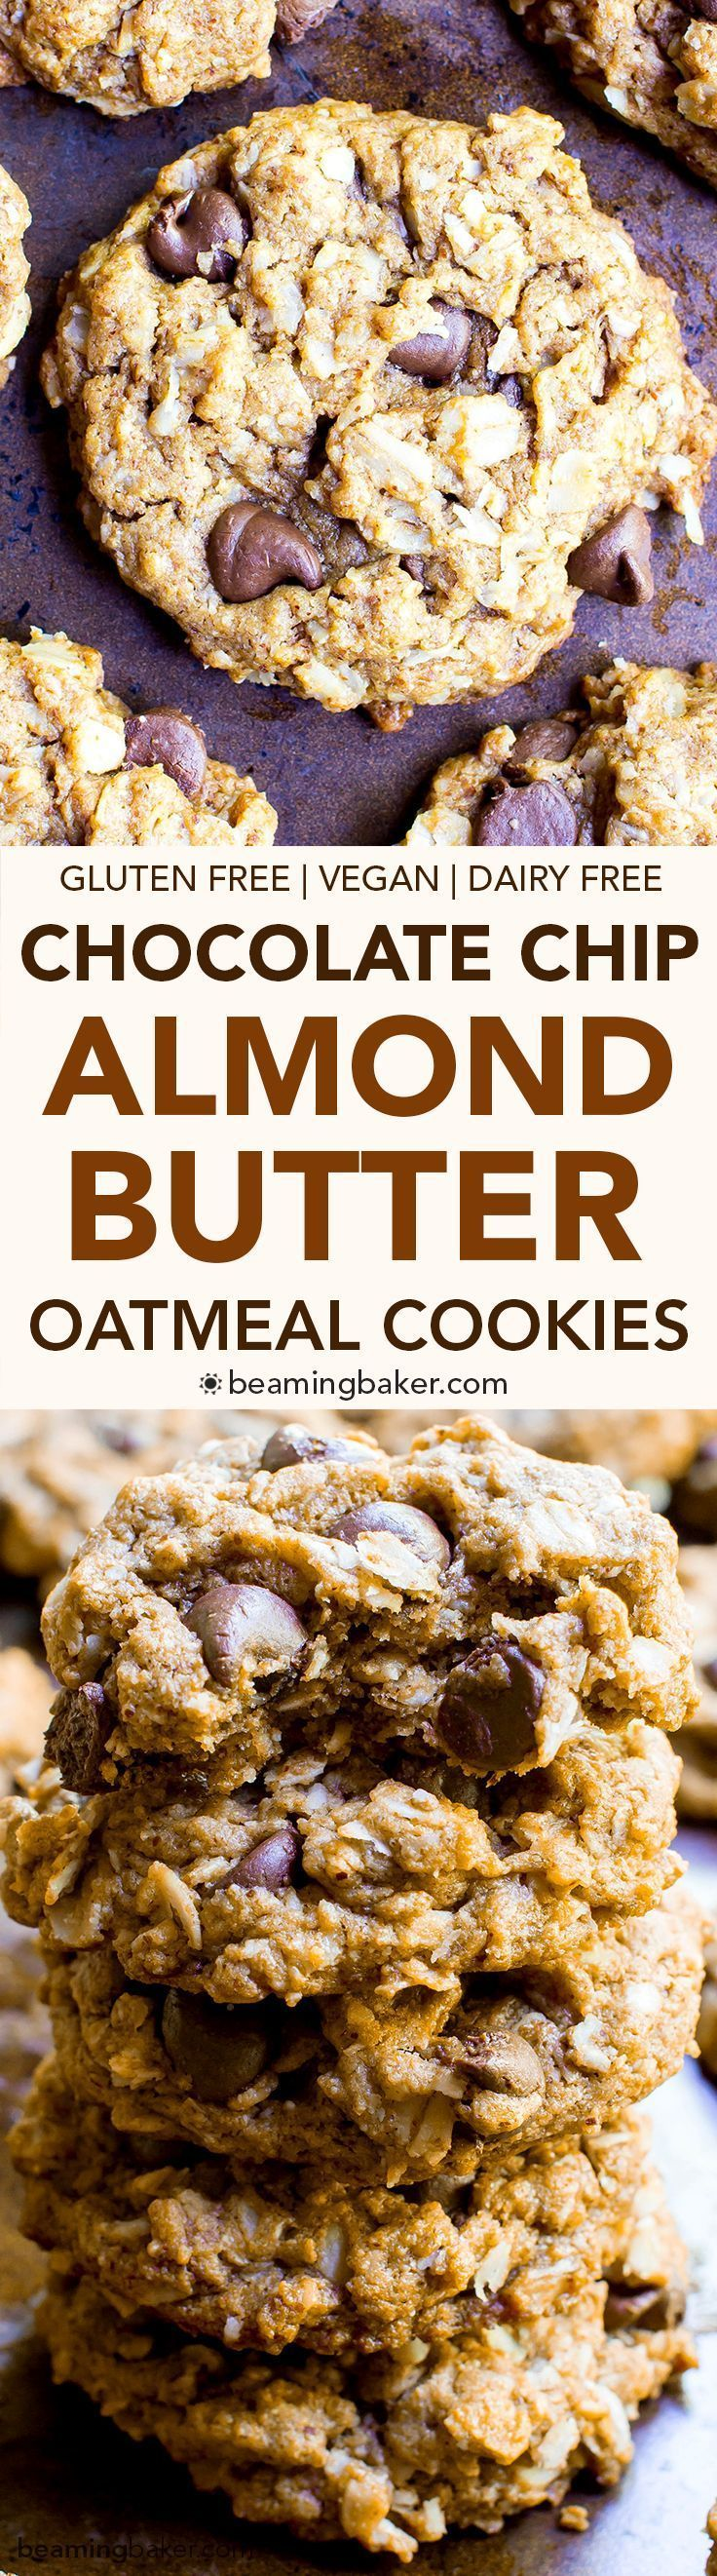 Almond Butter Oatmeal Chocolate Chip Cookies (V+GF): An easy recipe for deliciously simple chocolate chip cookies packed with almond butter, oats and coconut. #Vegan #GlutenFree #DairyFree | http://Be (Almond Butter Recipe)